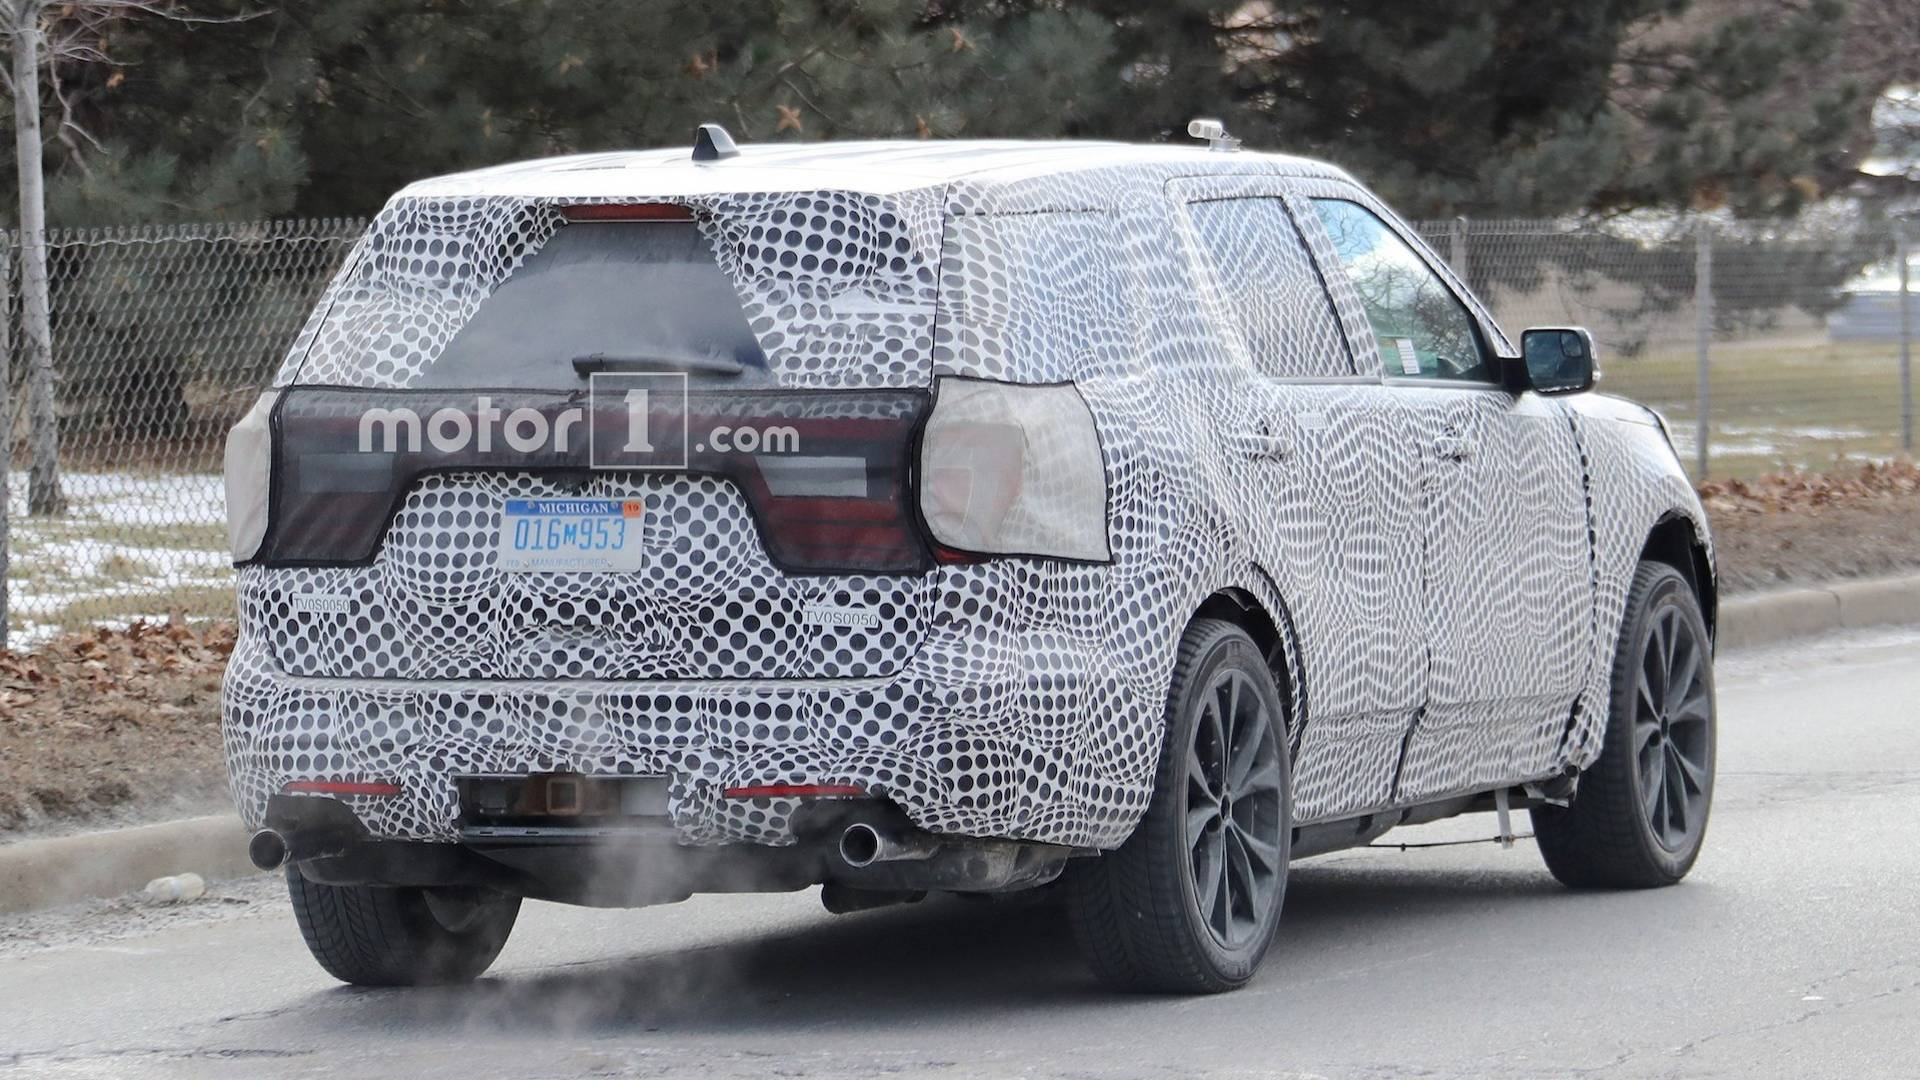 VWVortex.com - Next-gen 2019 Ford Explorer mule spied ...